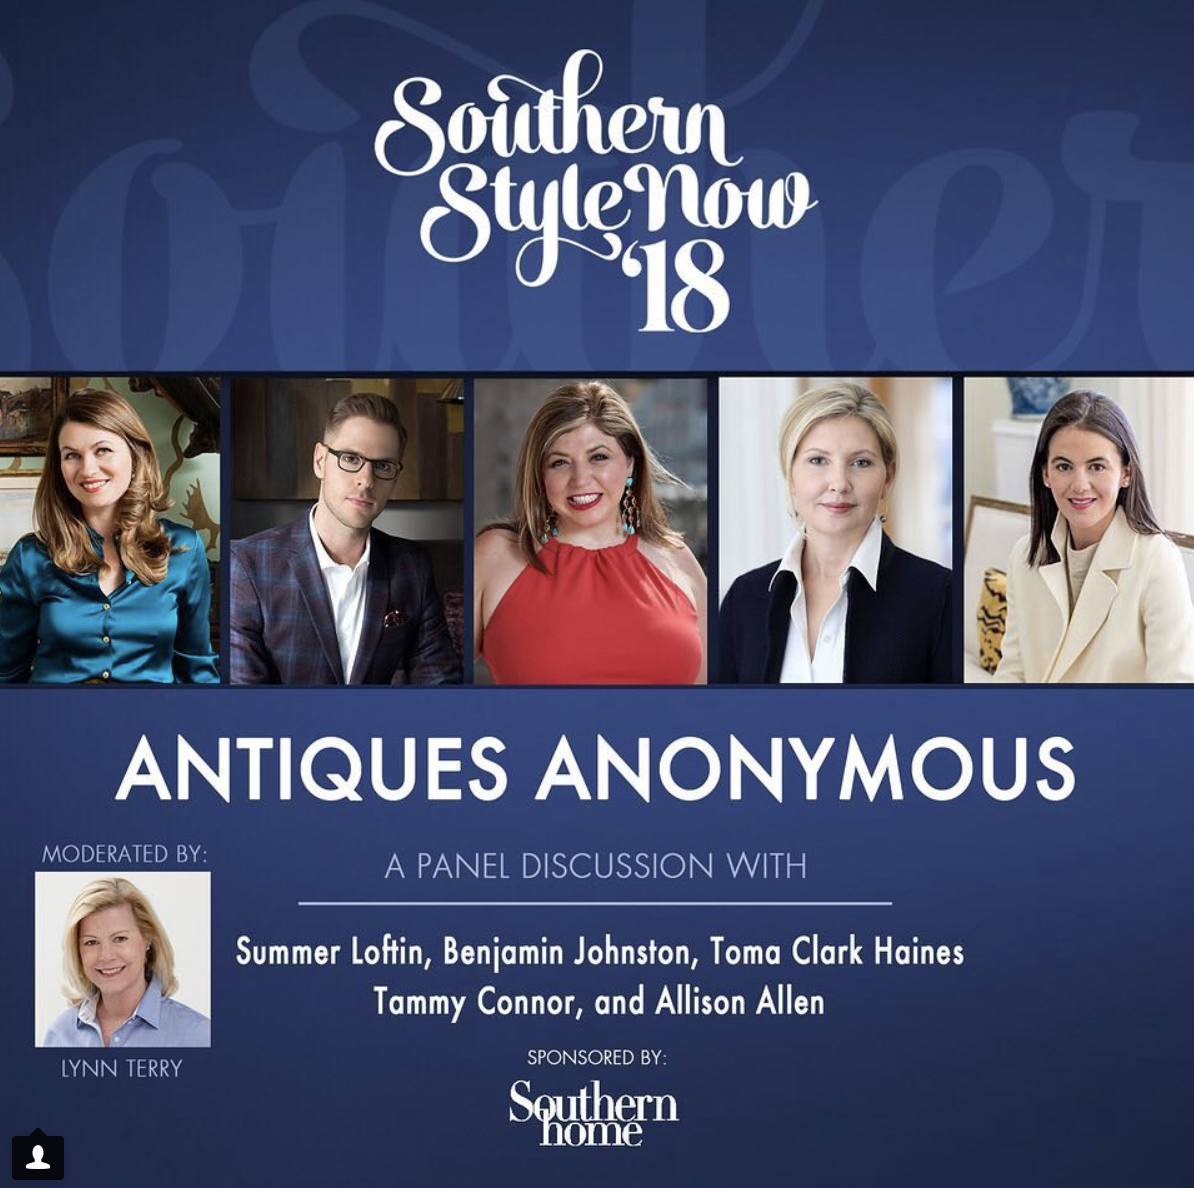 Southern Style Now Panel: Antiques Anonymous